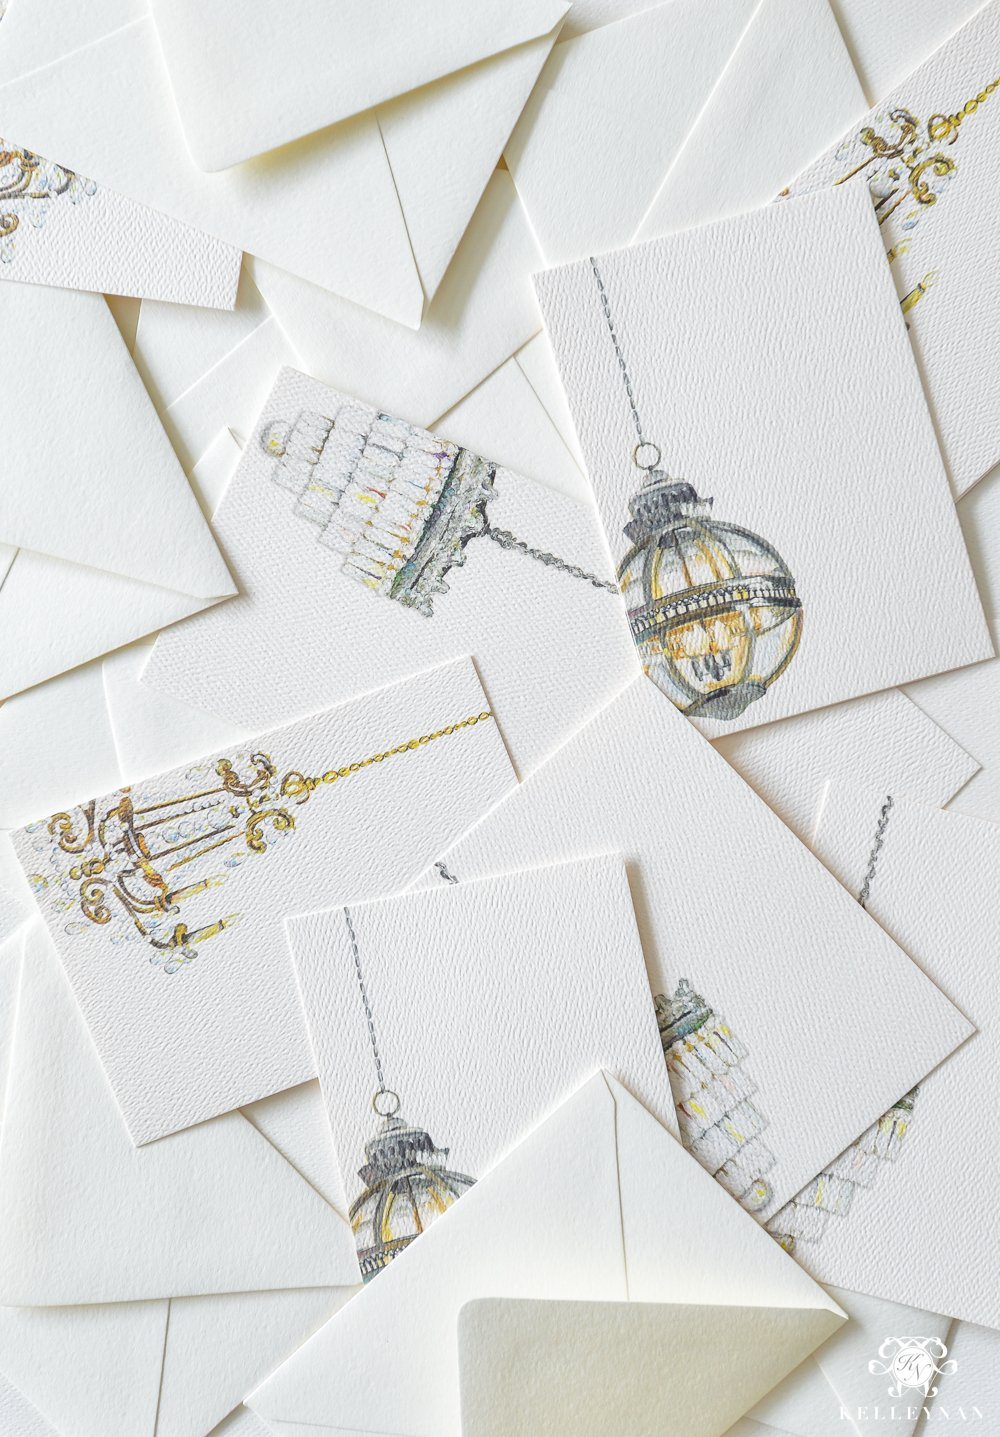 Chandelier art note cards and stationery